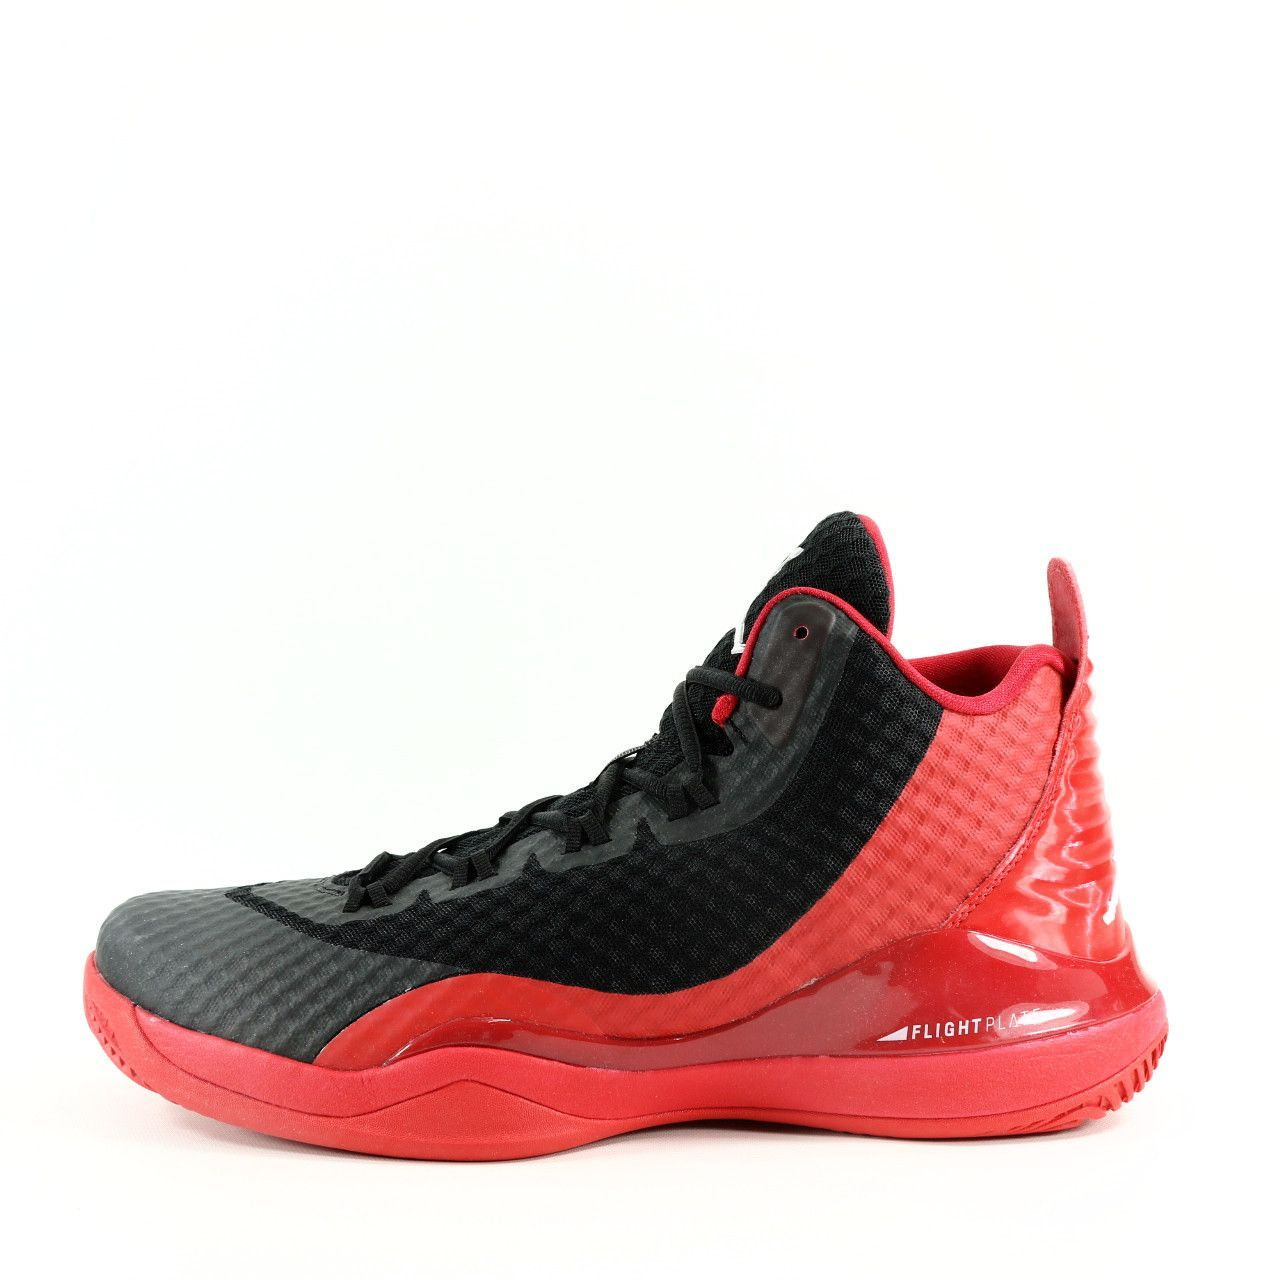 quality design d99c0 cec84 NIKE Air Jordan Super.Fly 3 PO Basketball Shoes (University Red Black)    Stuff to Buy   Pinterest   Super fly, Nike air jordans and Red black